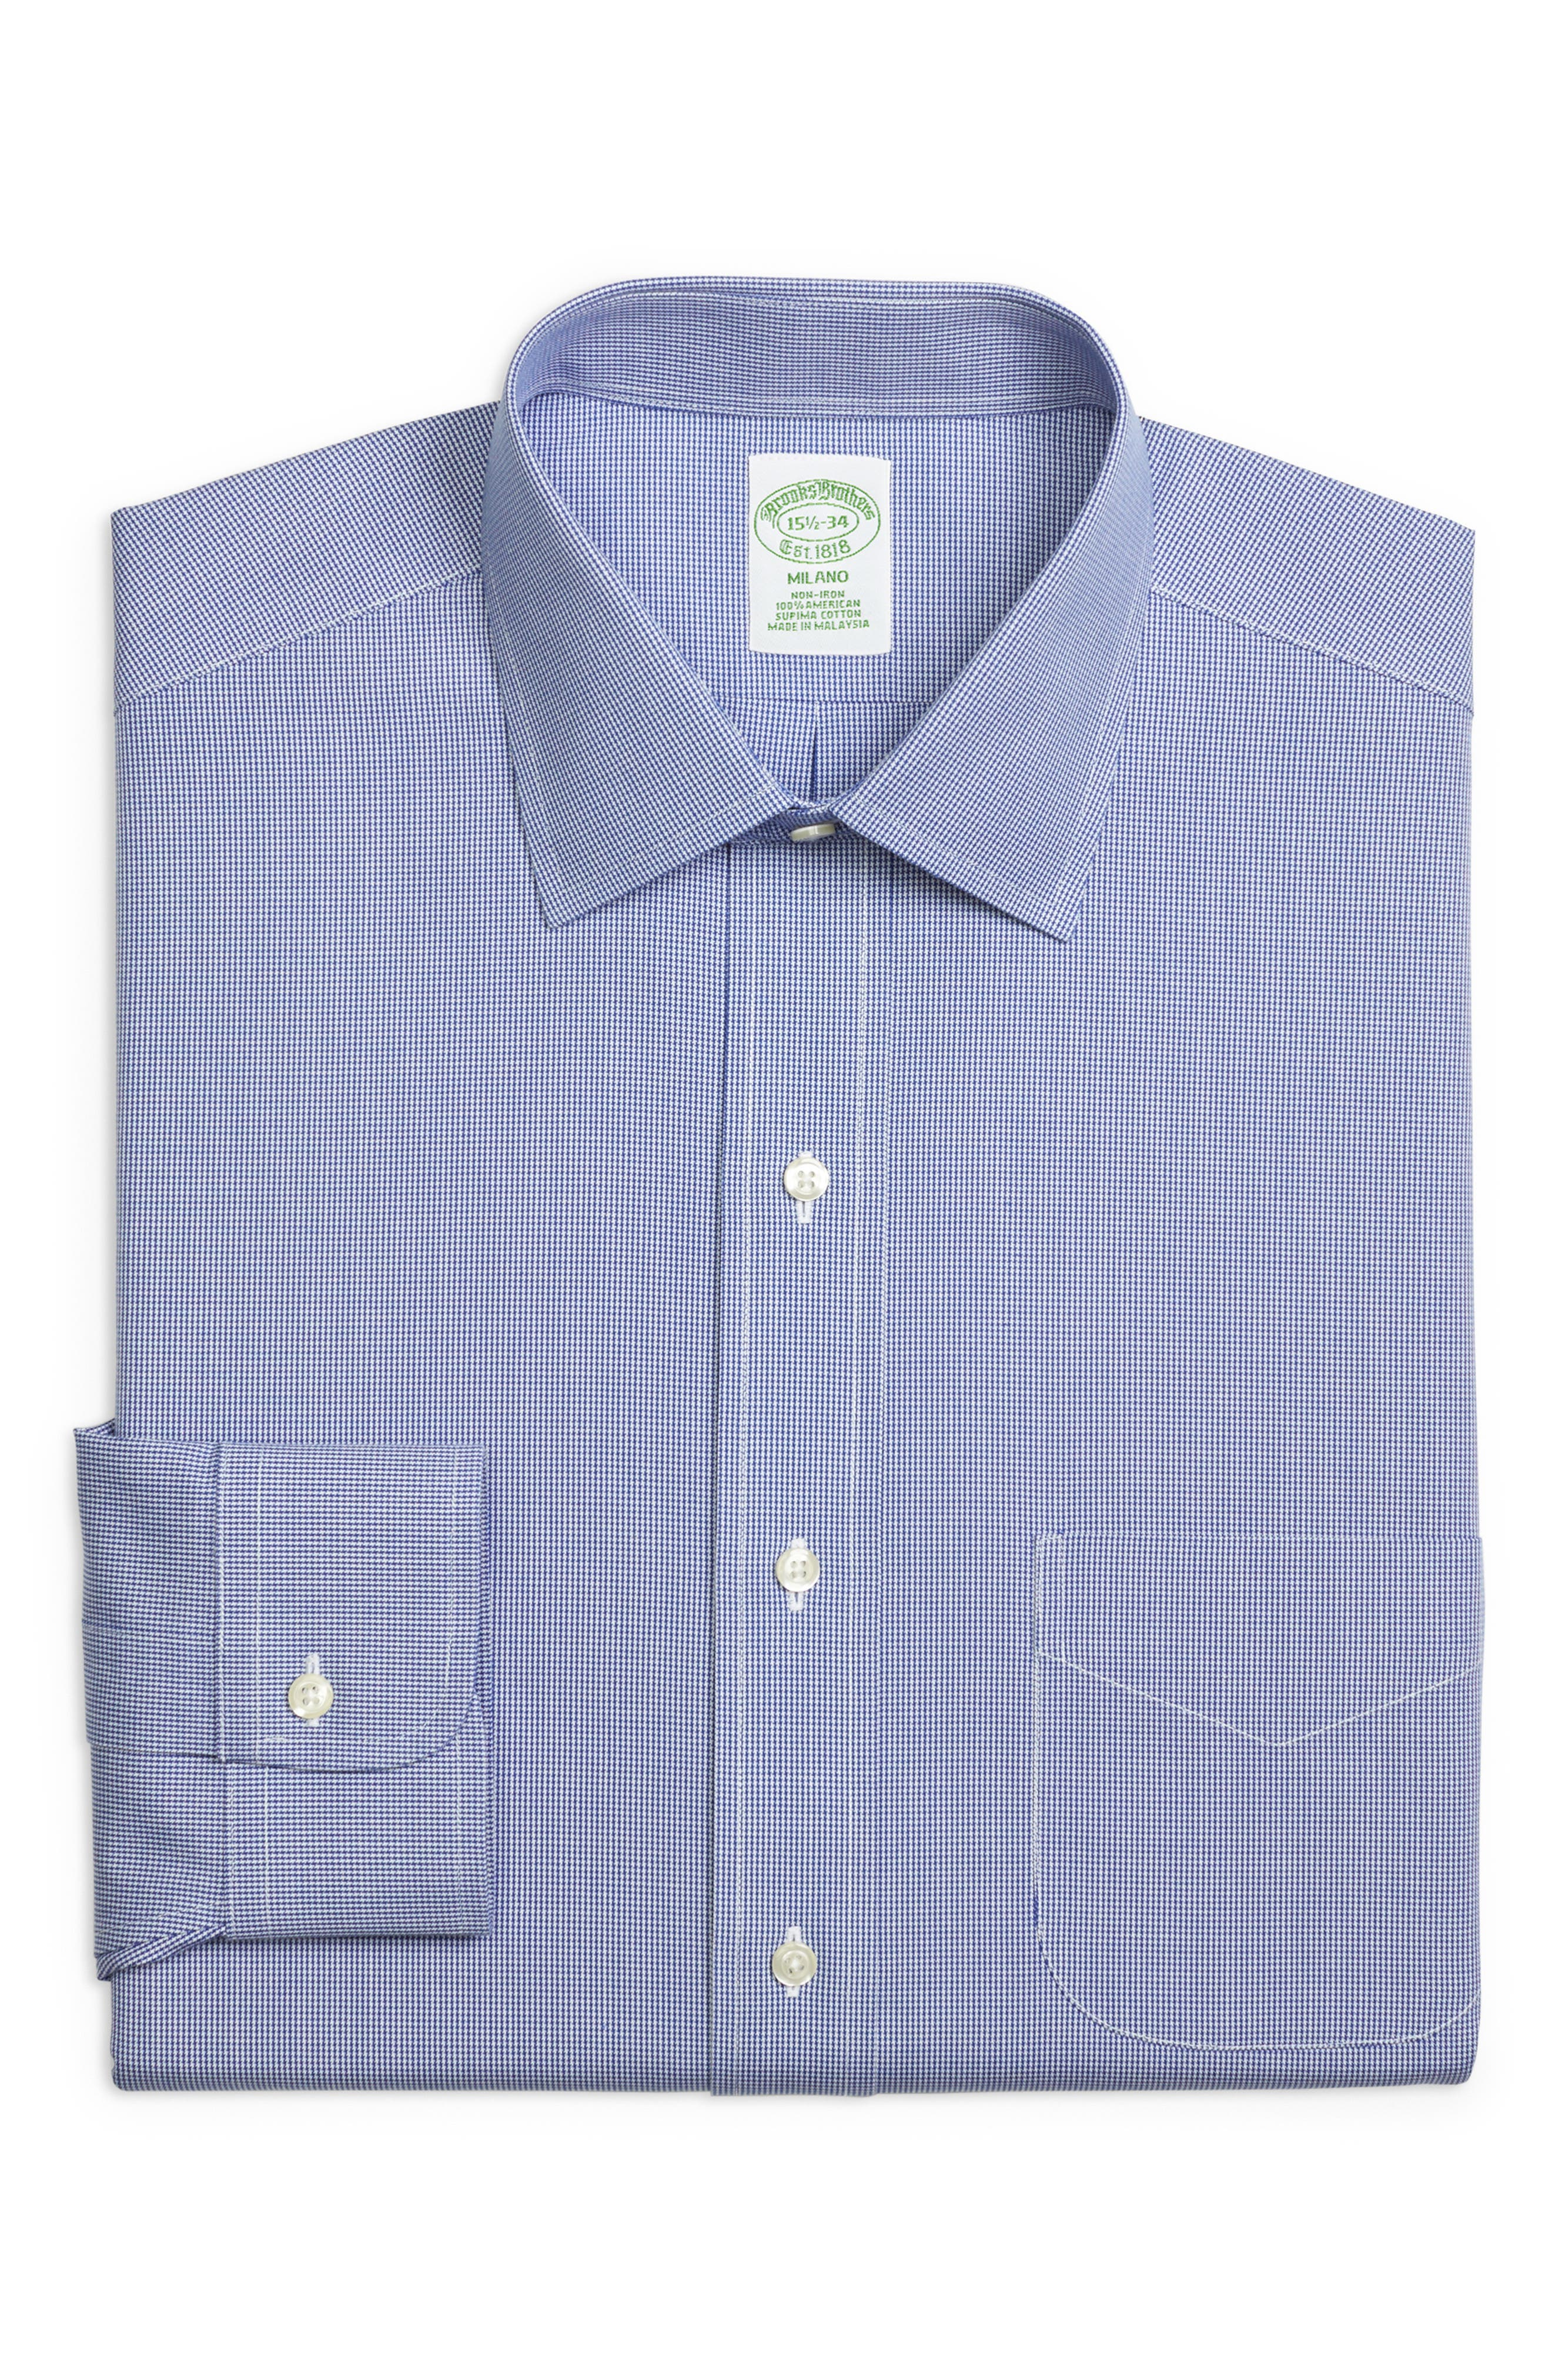 Trim Fit Houndstooth Dress Shirt,                             Main thumbnail 1, color,                             BLUE